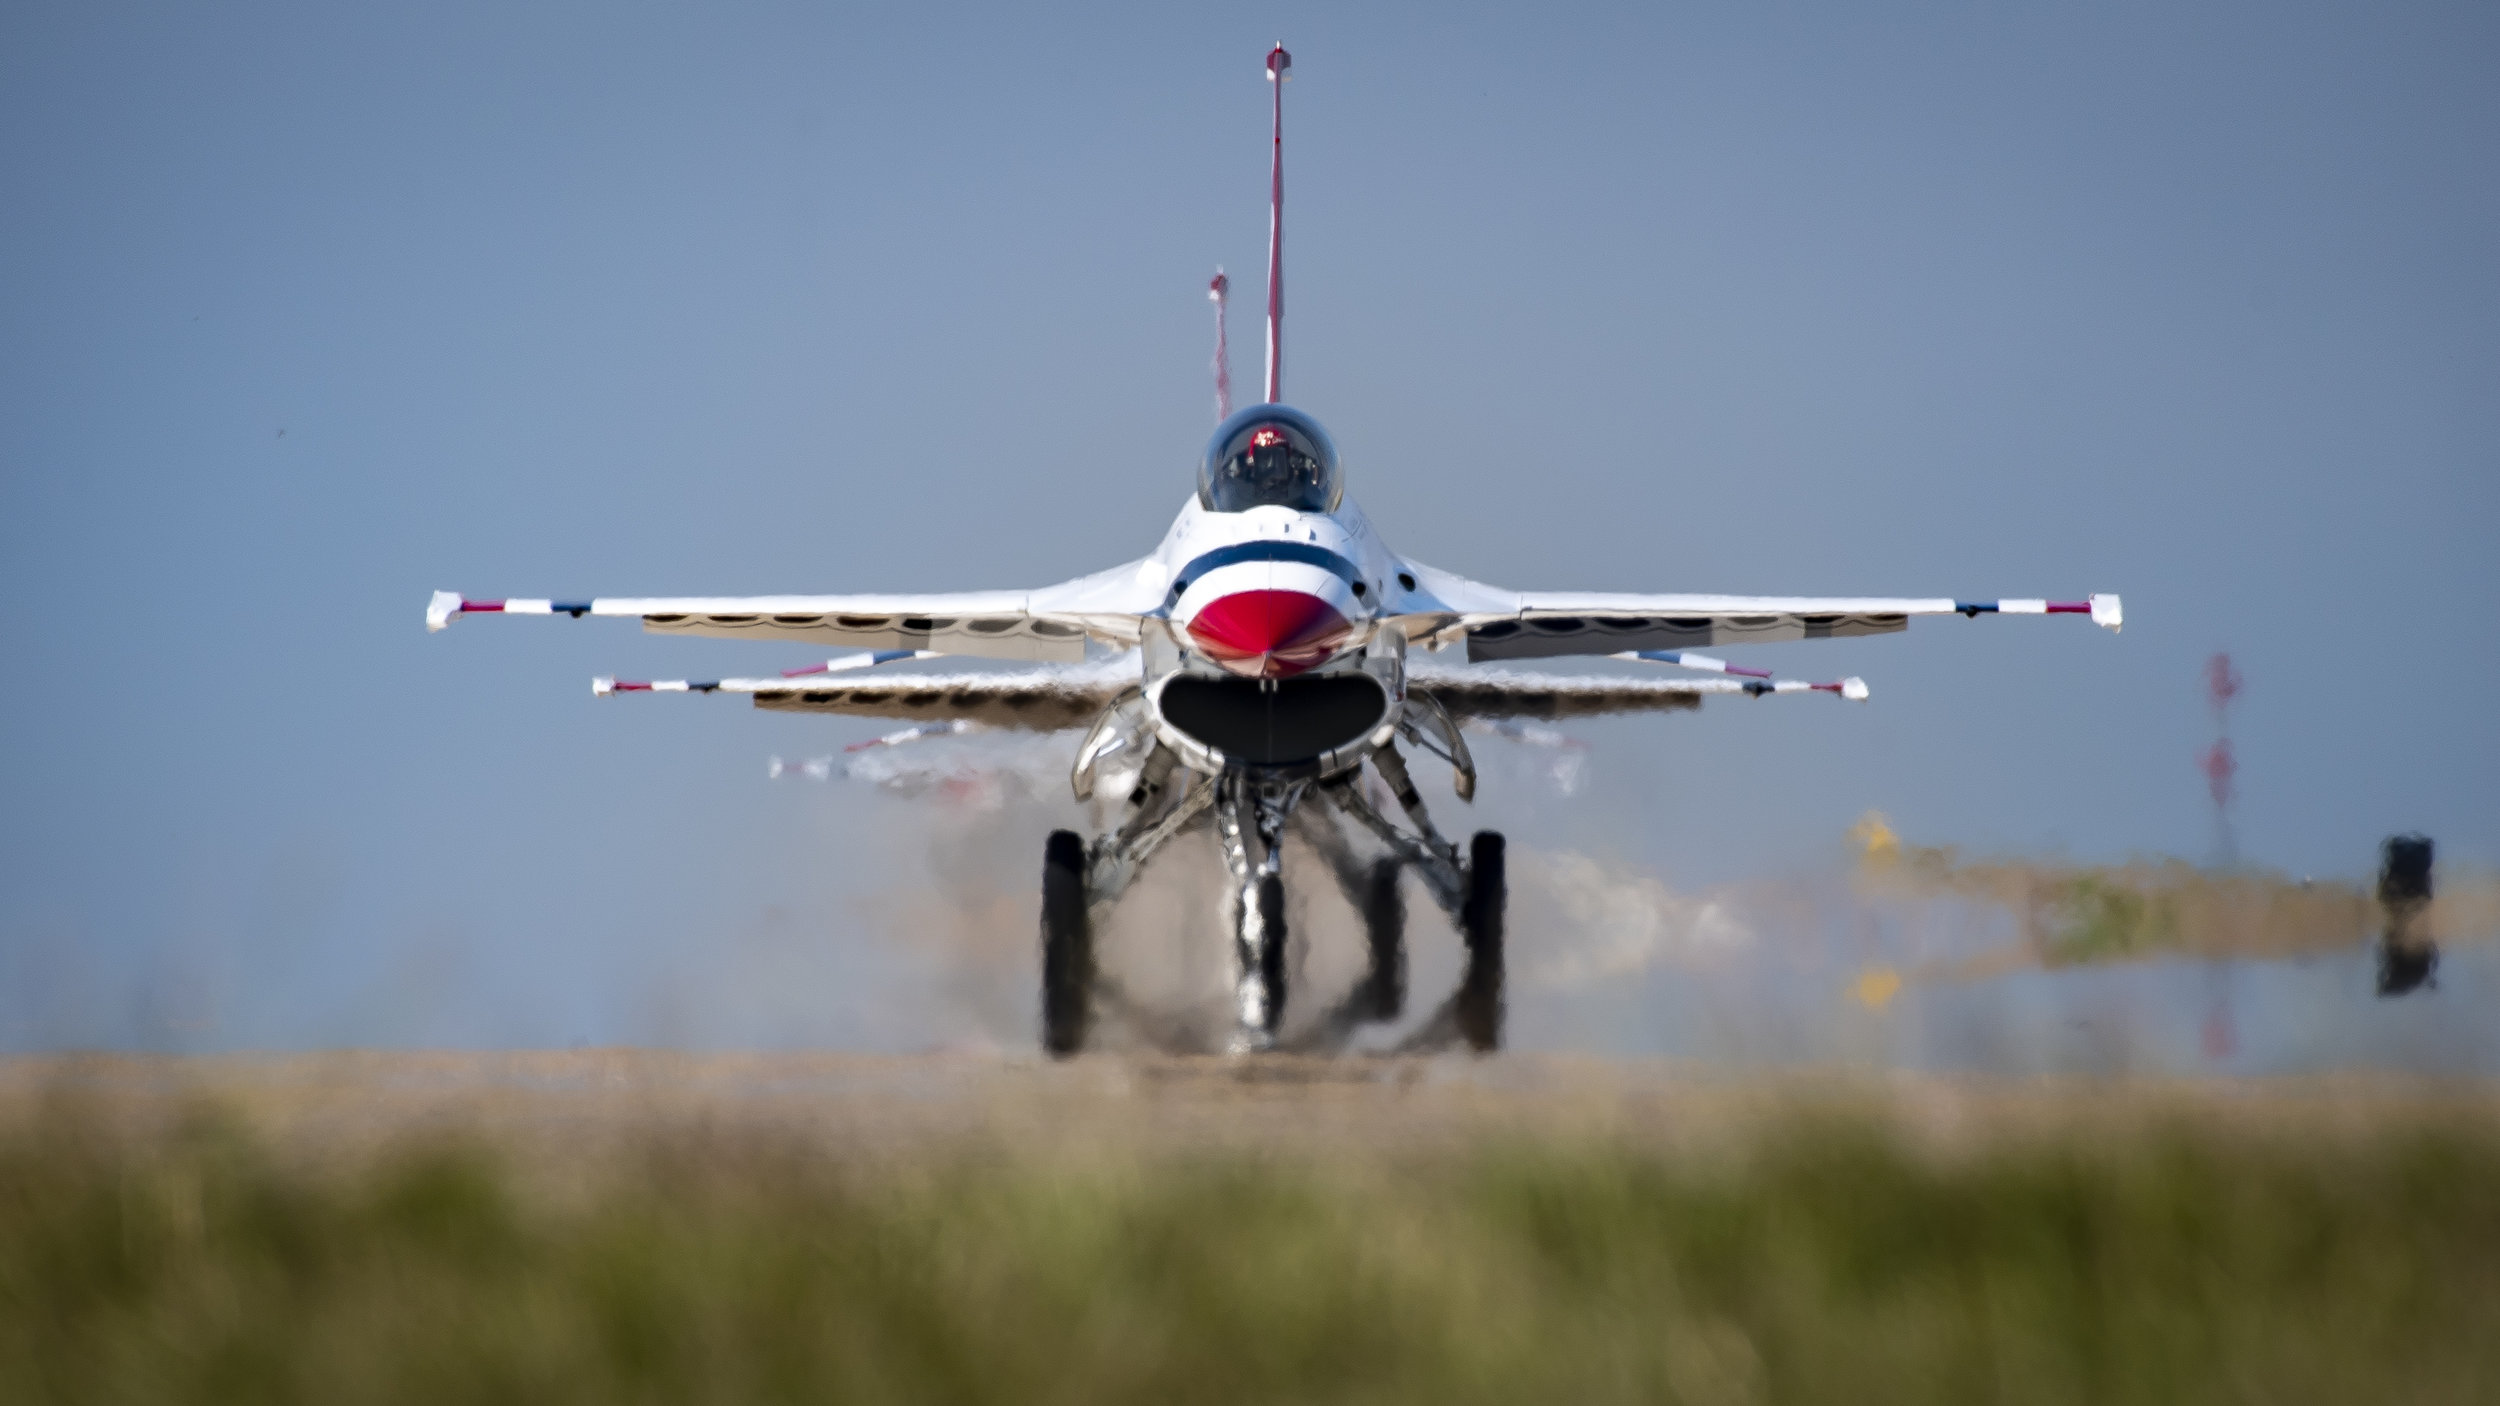 Ocean City Air Show 2020.Thunderbirds Release 2019 2020 Schedules Airshow News